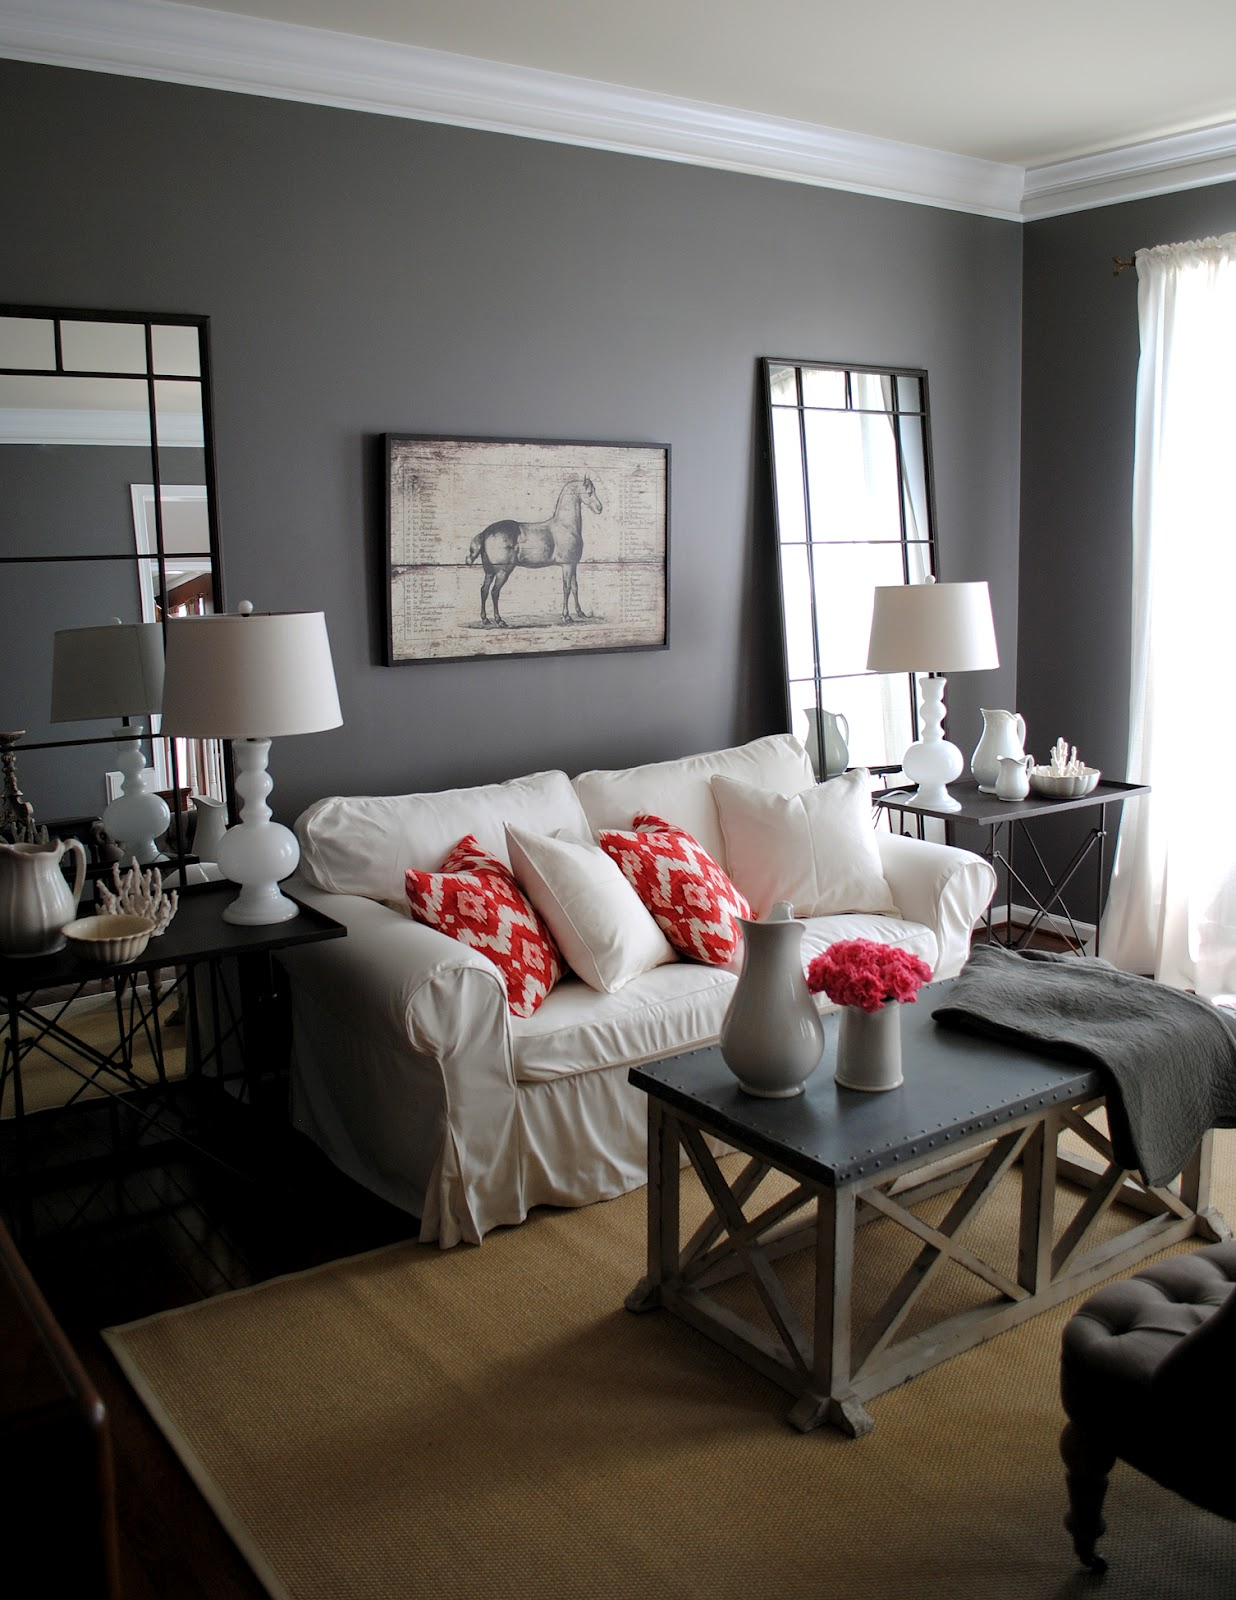 may recall that i selected sherwin williams gauntlet gray for my walls